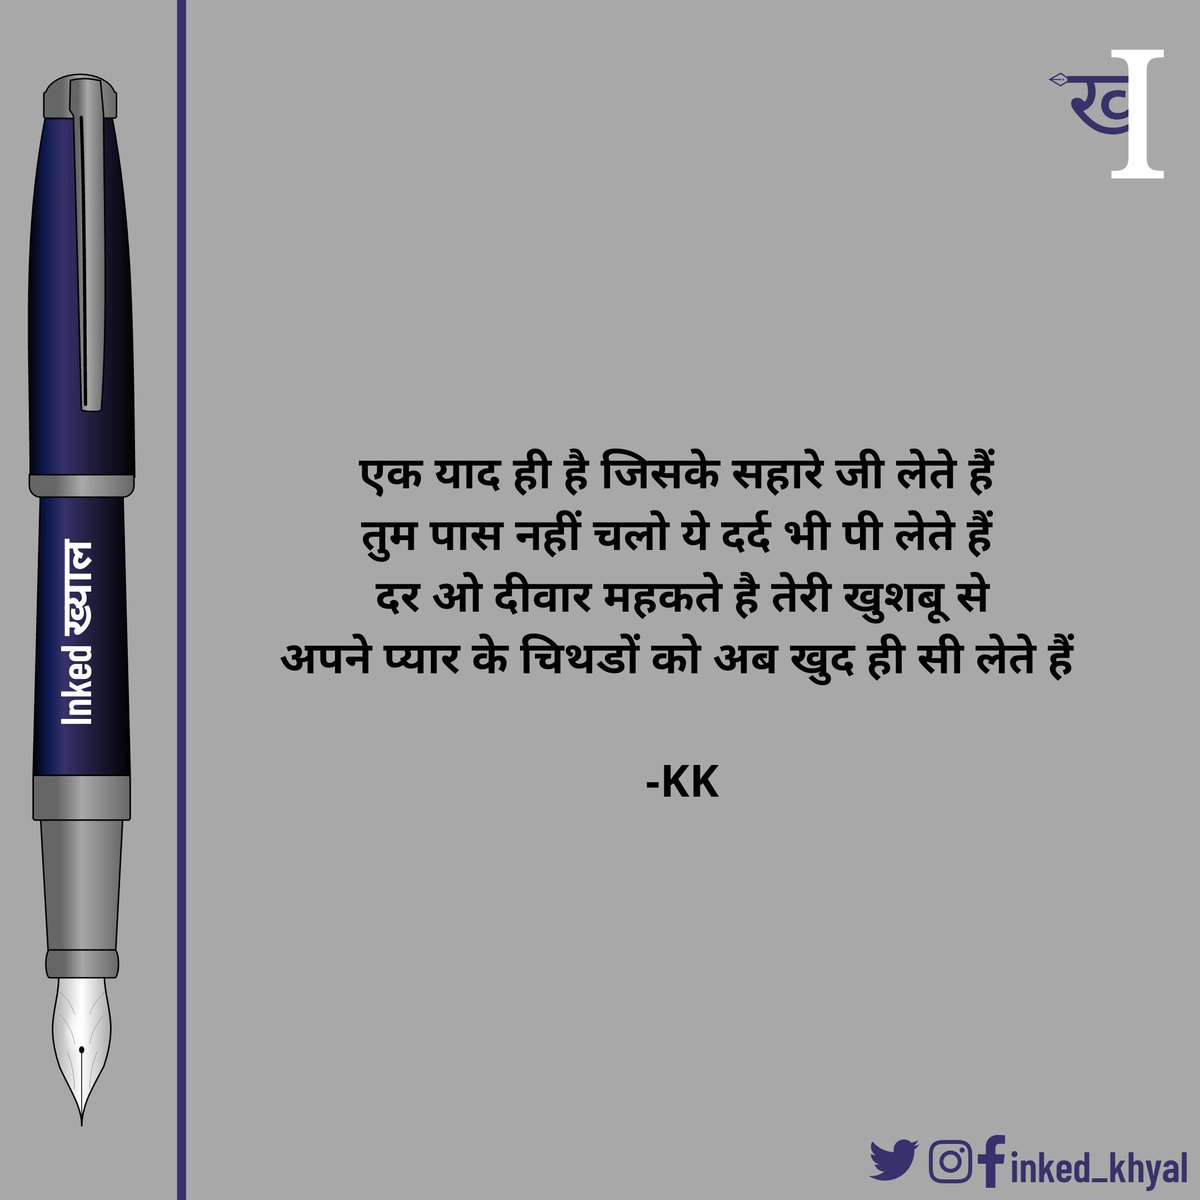 Inked By: KK IG: kk_prajapati71 Original Content© Like|Comment|Share Follow For More Inks @inked_khyal Use #inkedkhyal  Follow the Post 👇  👆 Tags➟ #insta #writing #shayari #poems #poetry #quotes #quote #stories #shayar #poet #writer